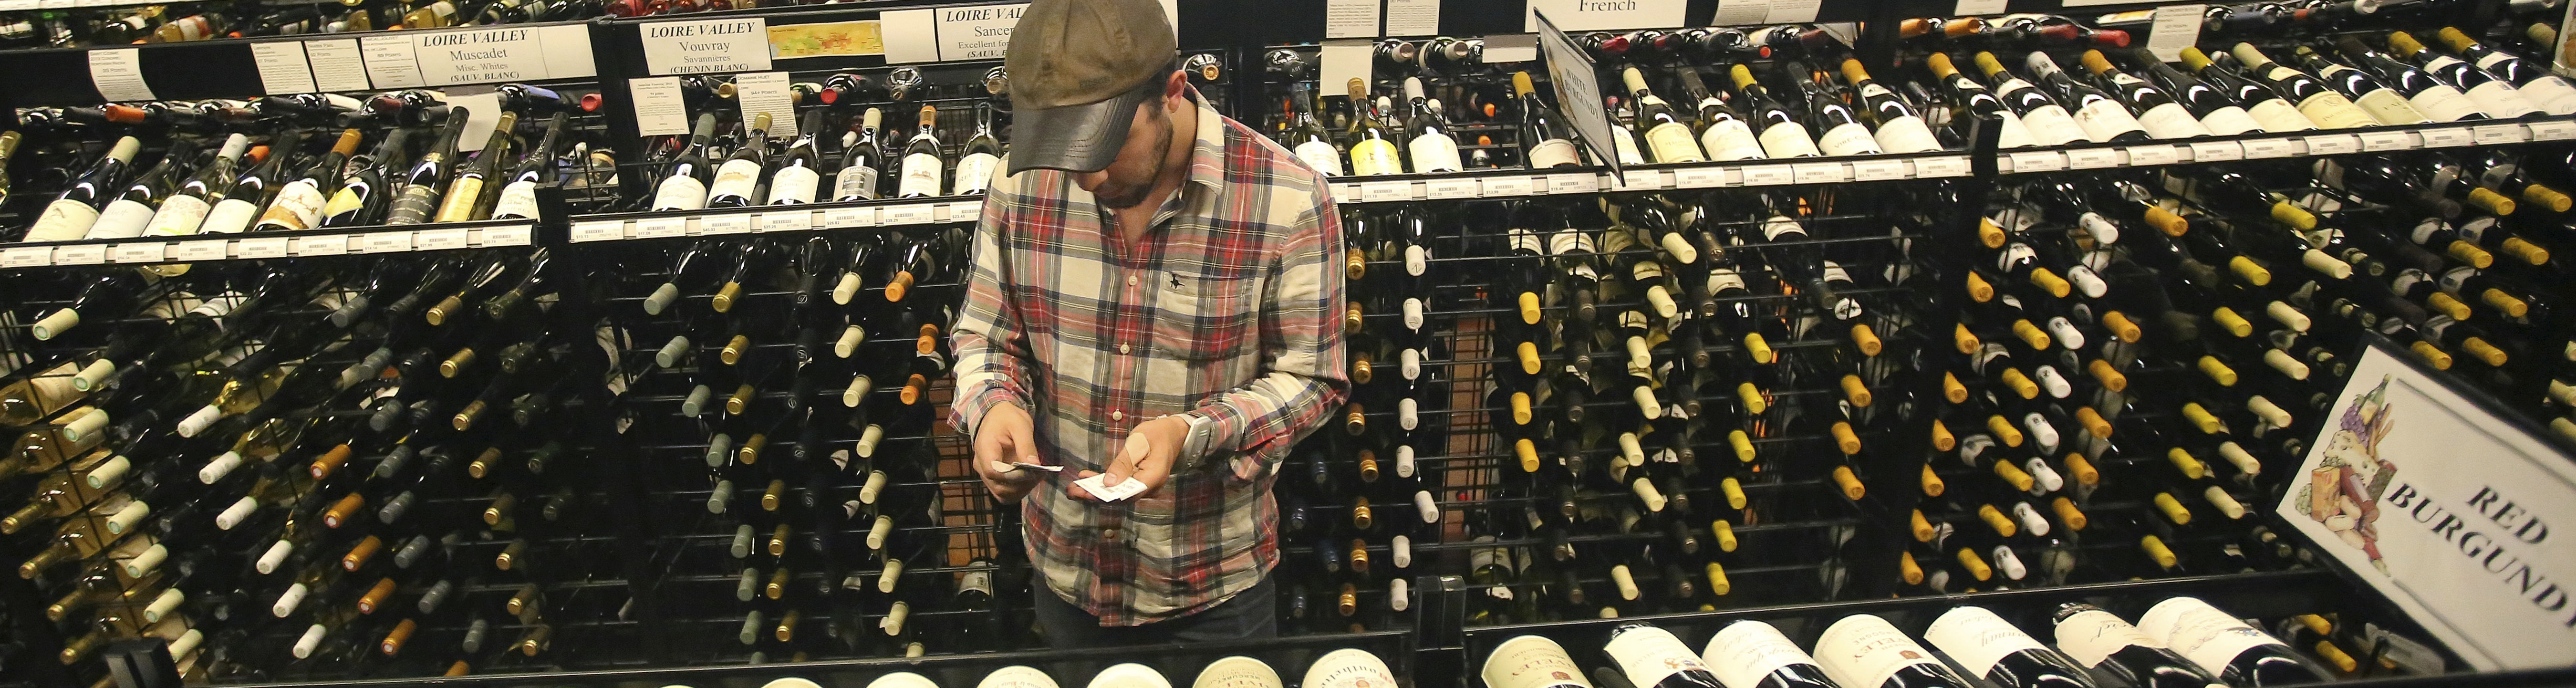 A worker at a state liquor store